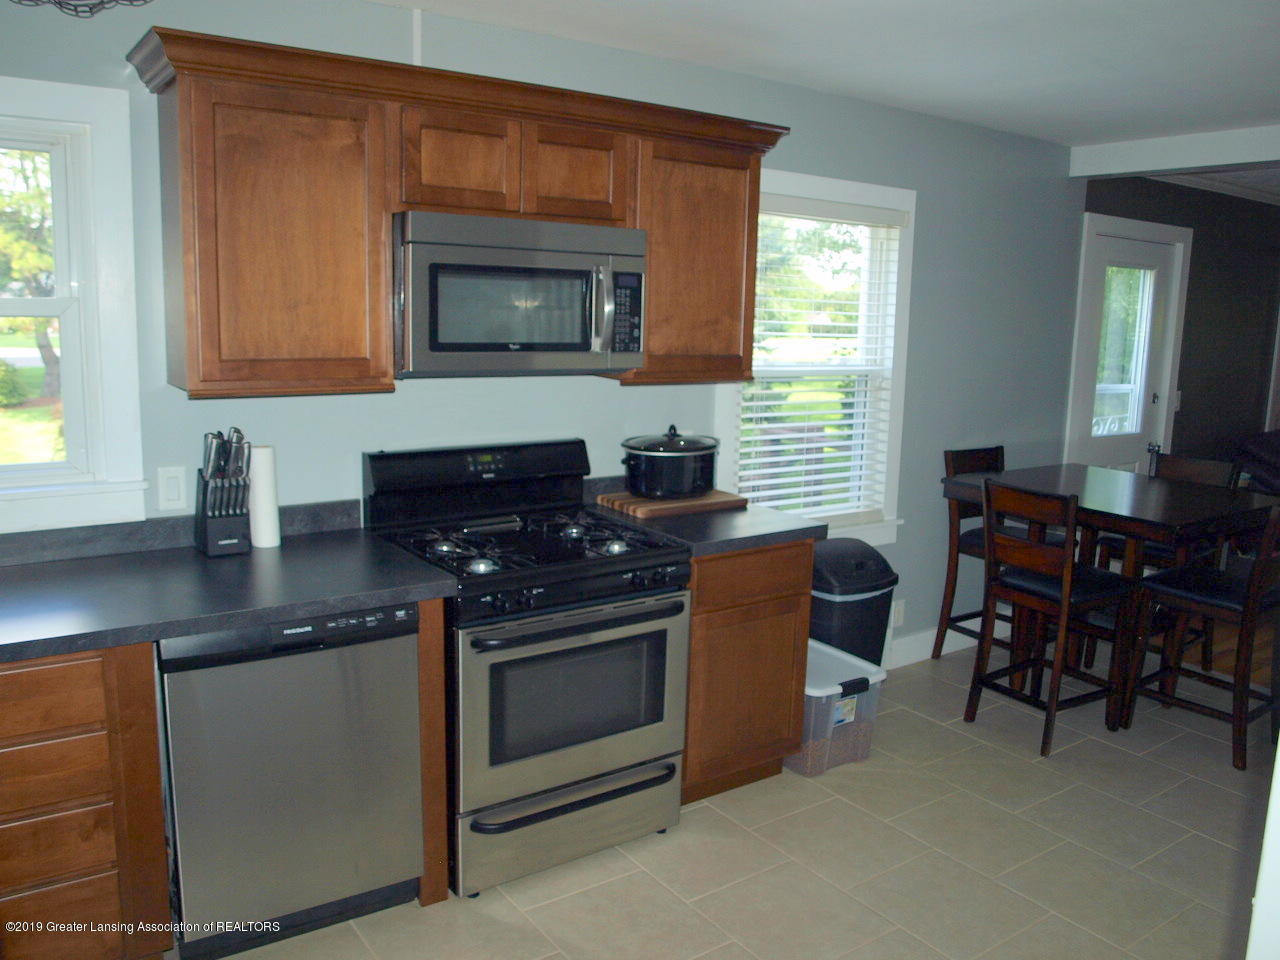 6070 E Clark Rd - kitchen - 18